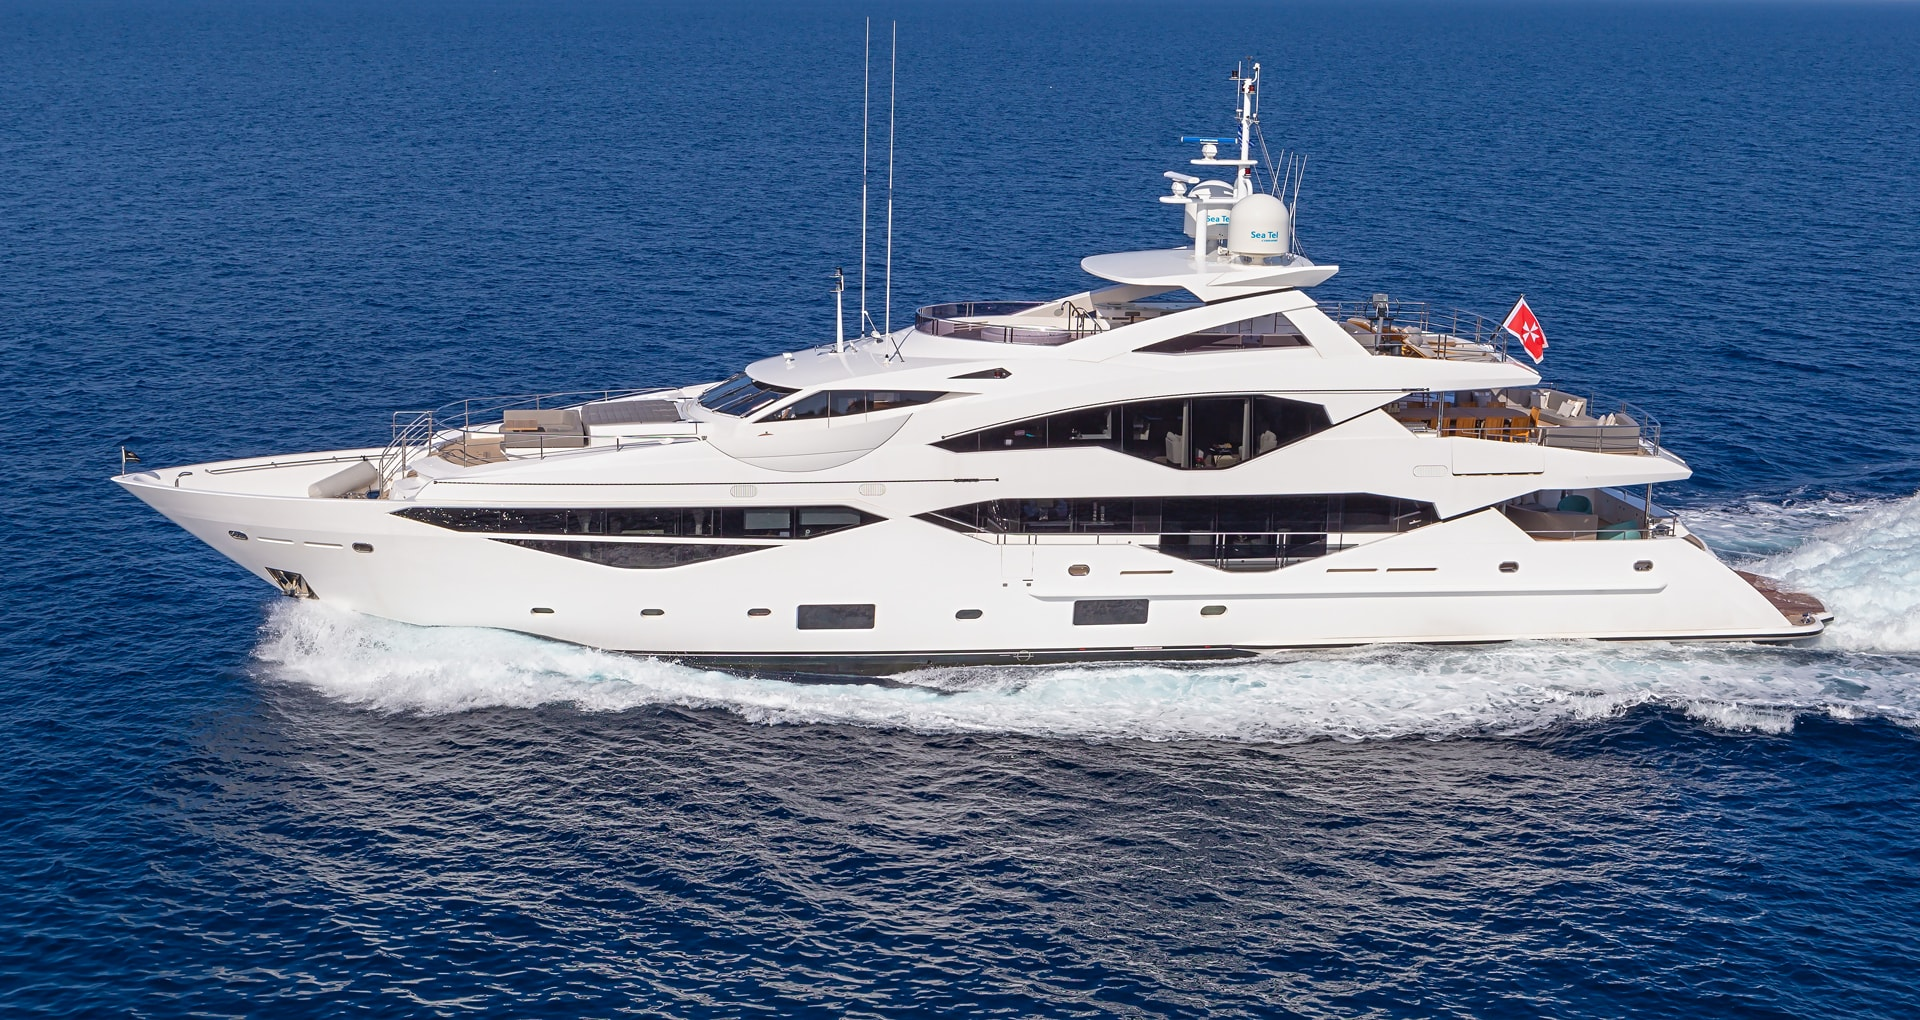 A fast superyacht